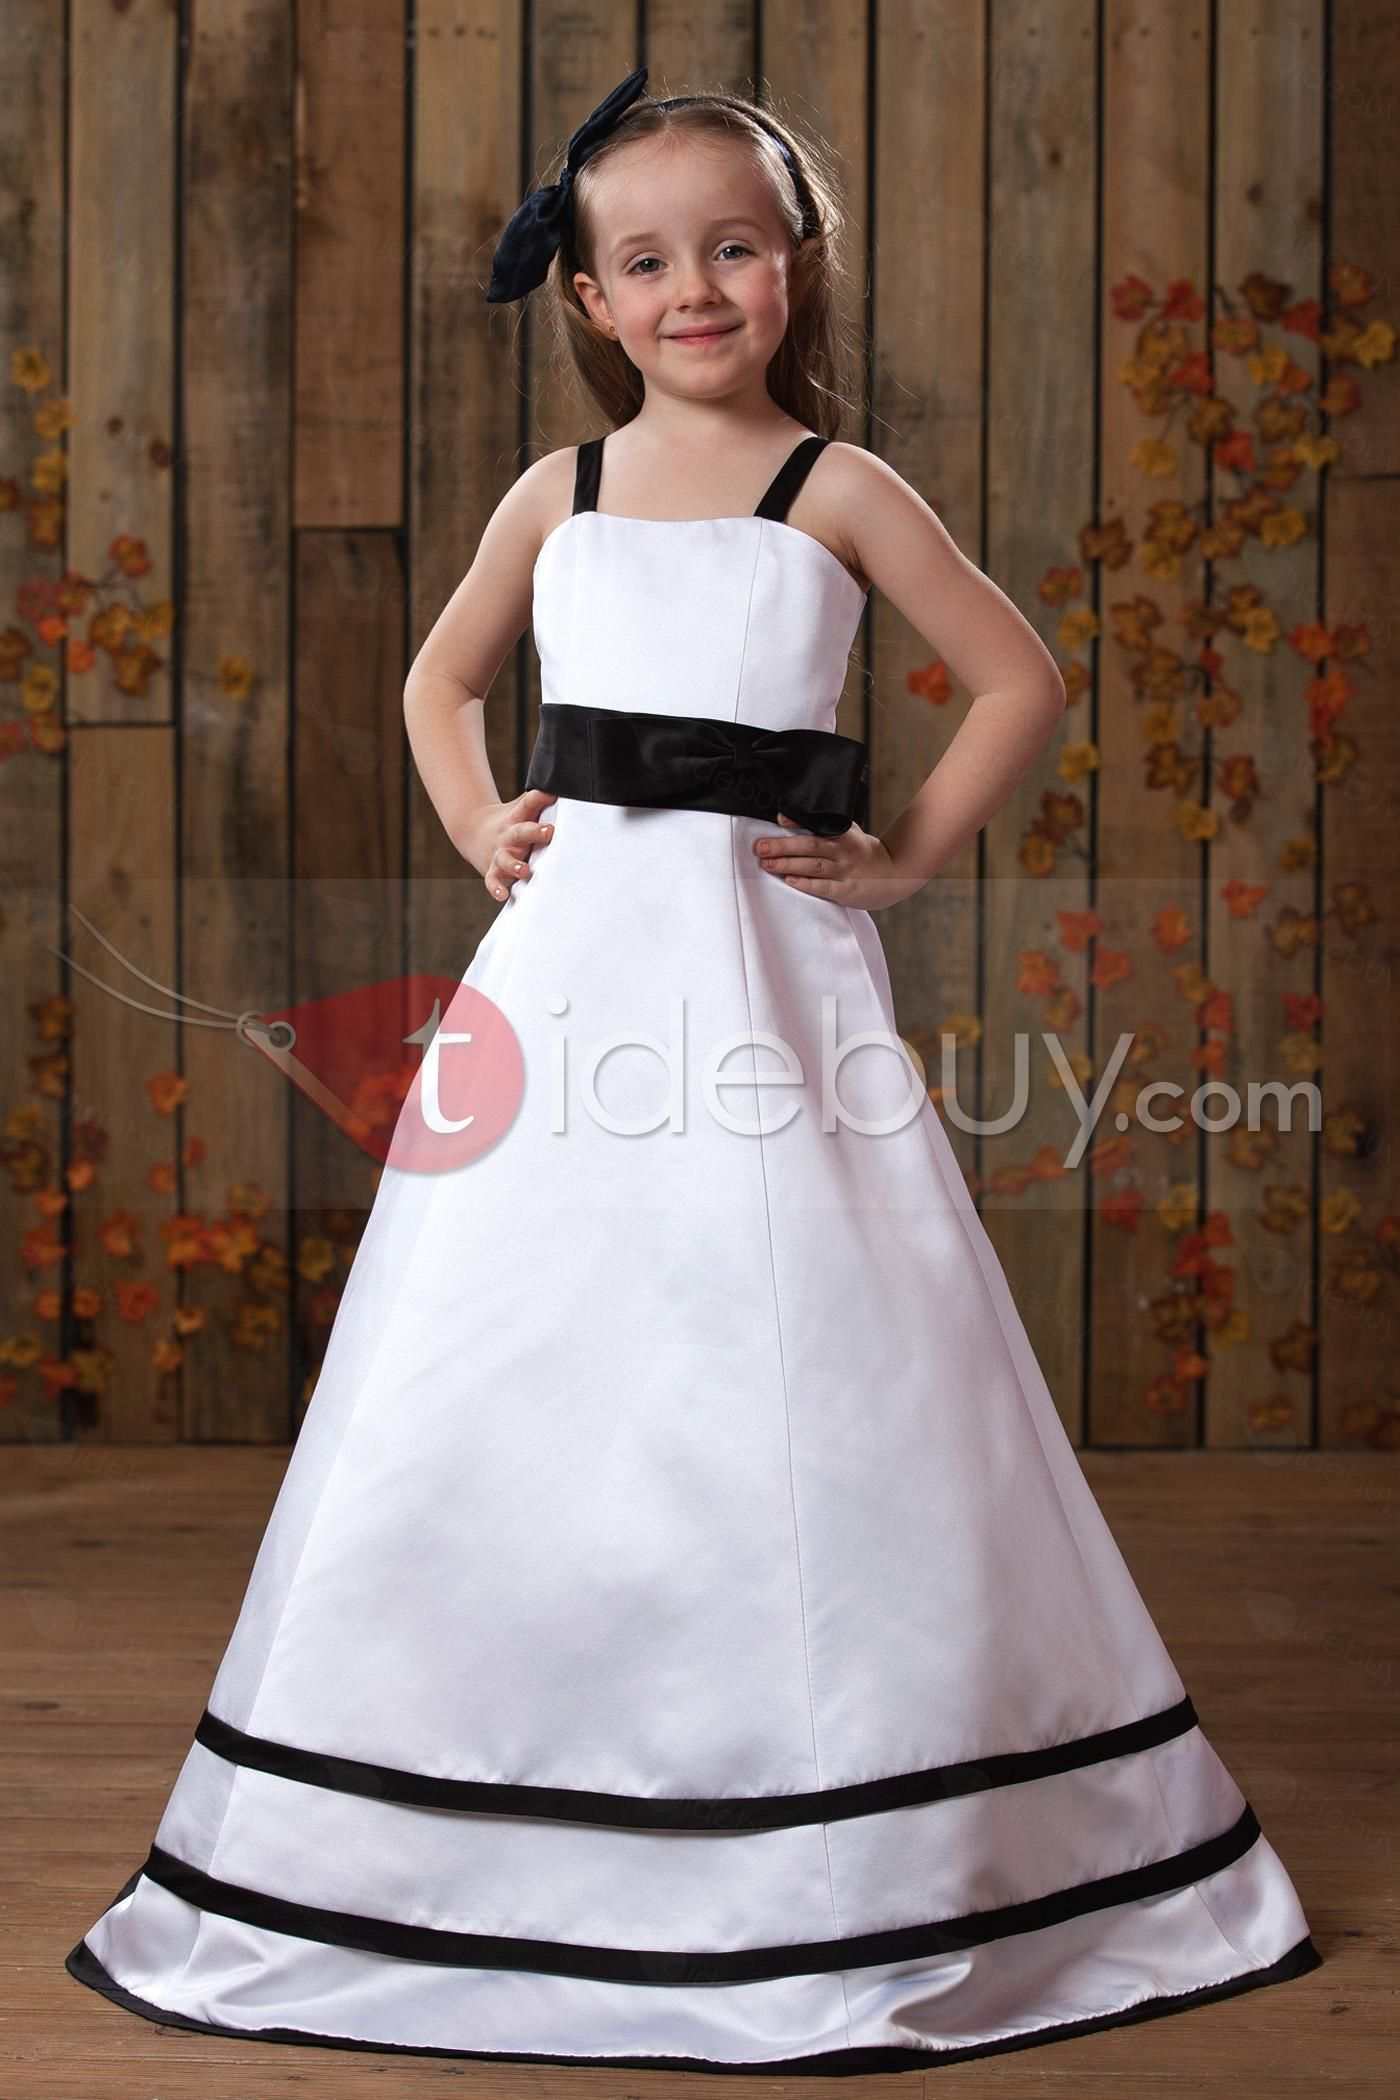 Girls wedding dress  Beautiful Square Neckline Aline FloorLength Bowknot Embellishing